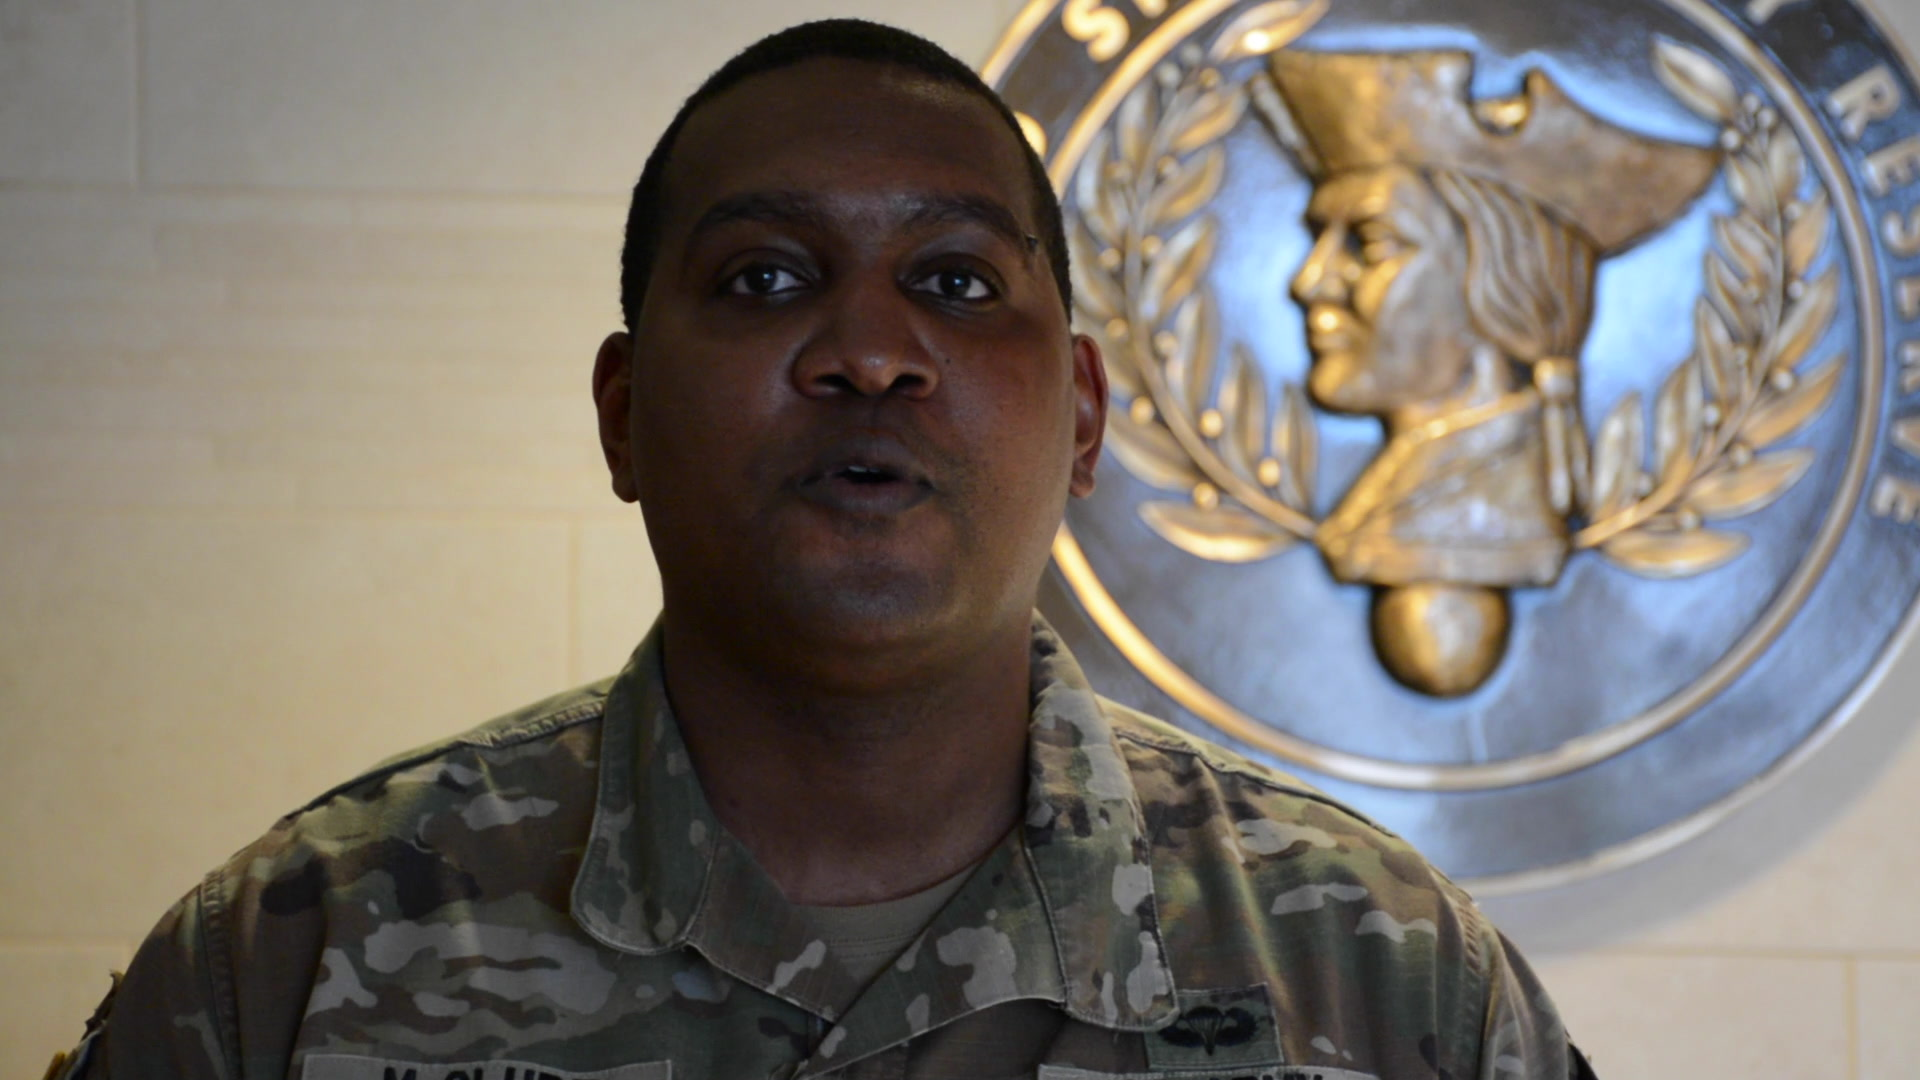 MAJ Christopher McClure, a logistician officer assigned to the 561st Regional Support Group (RSG), tells why he serves in the U.S Army Reserve at the Omaha reserve center, Elkhorn, NE March 28, 2021. The United States Army Reserve Command (USARC) is highlighting Soldiers' stories and how serving in the Army reserve affects Soldiers' civilian careers.